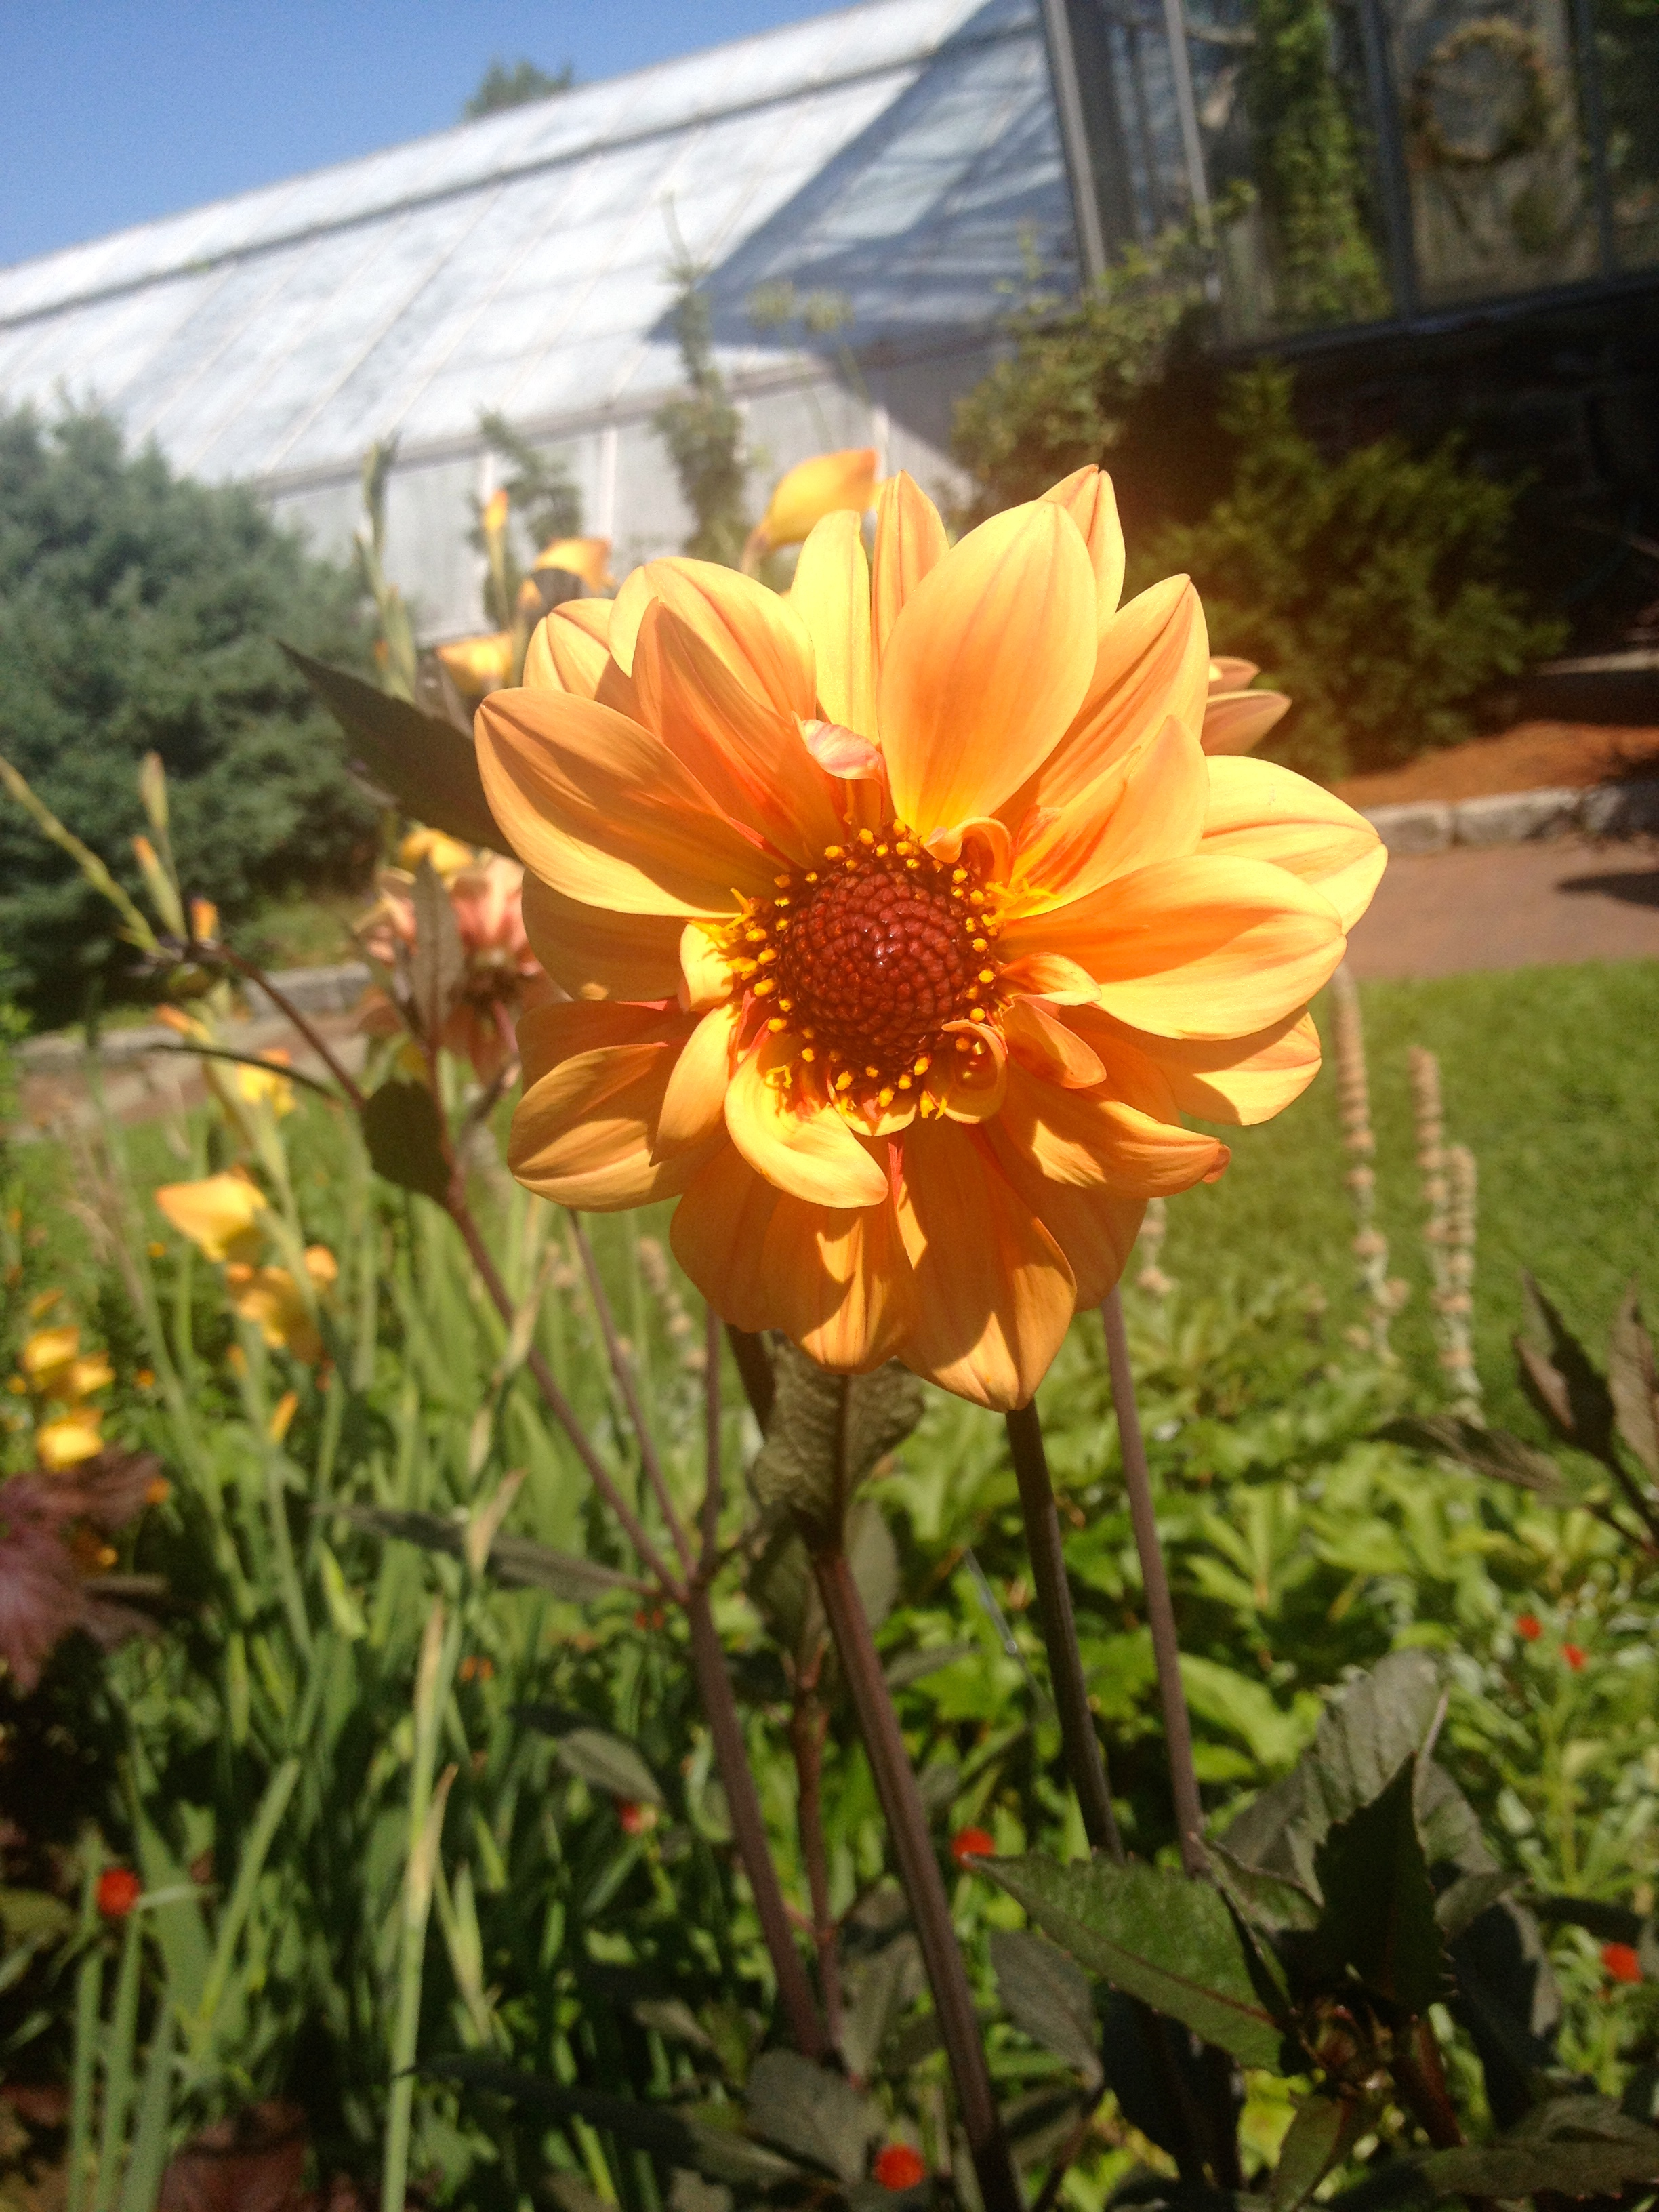 Dahlia's at the Garden by Ms. Cruz